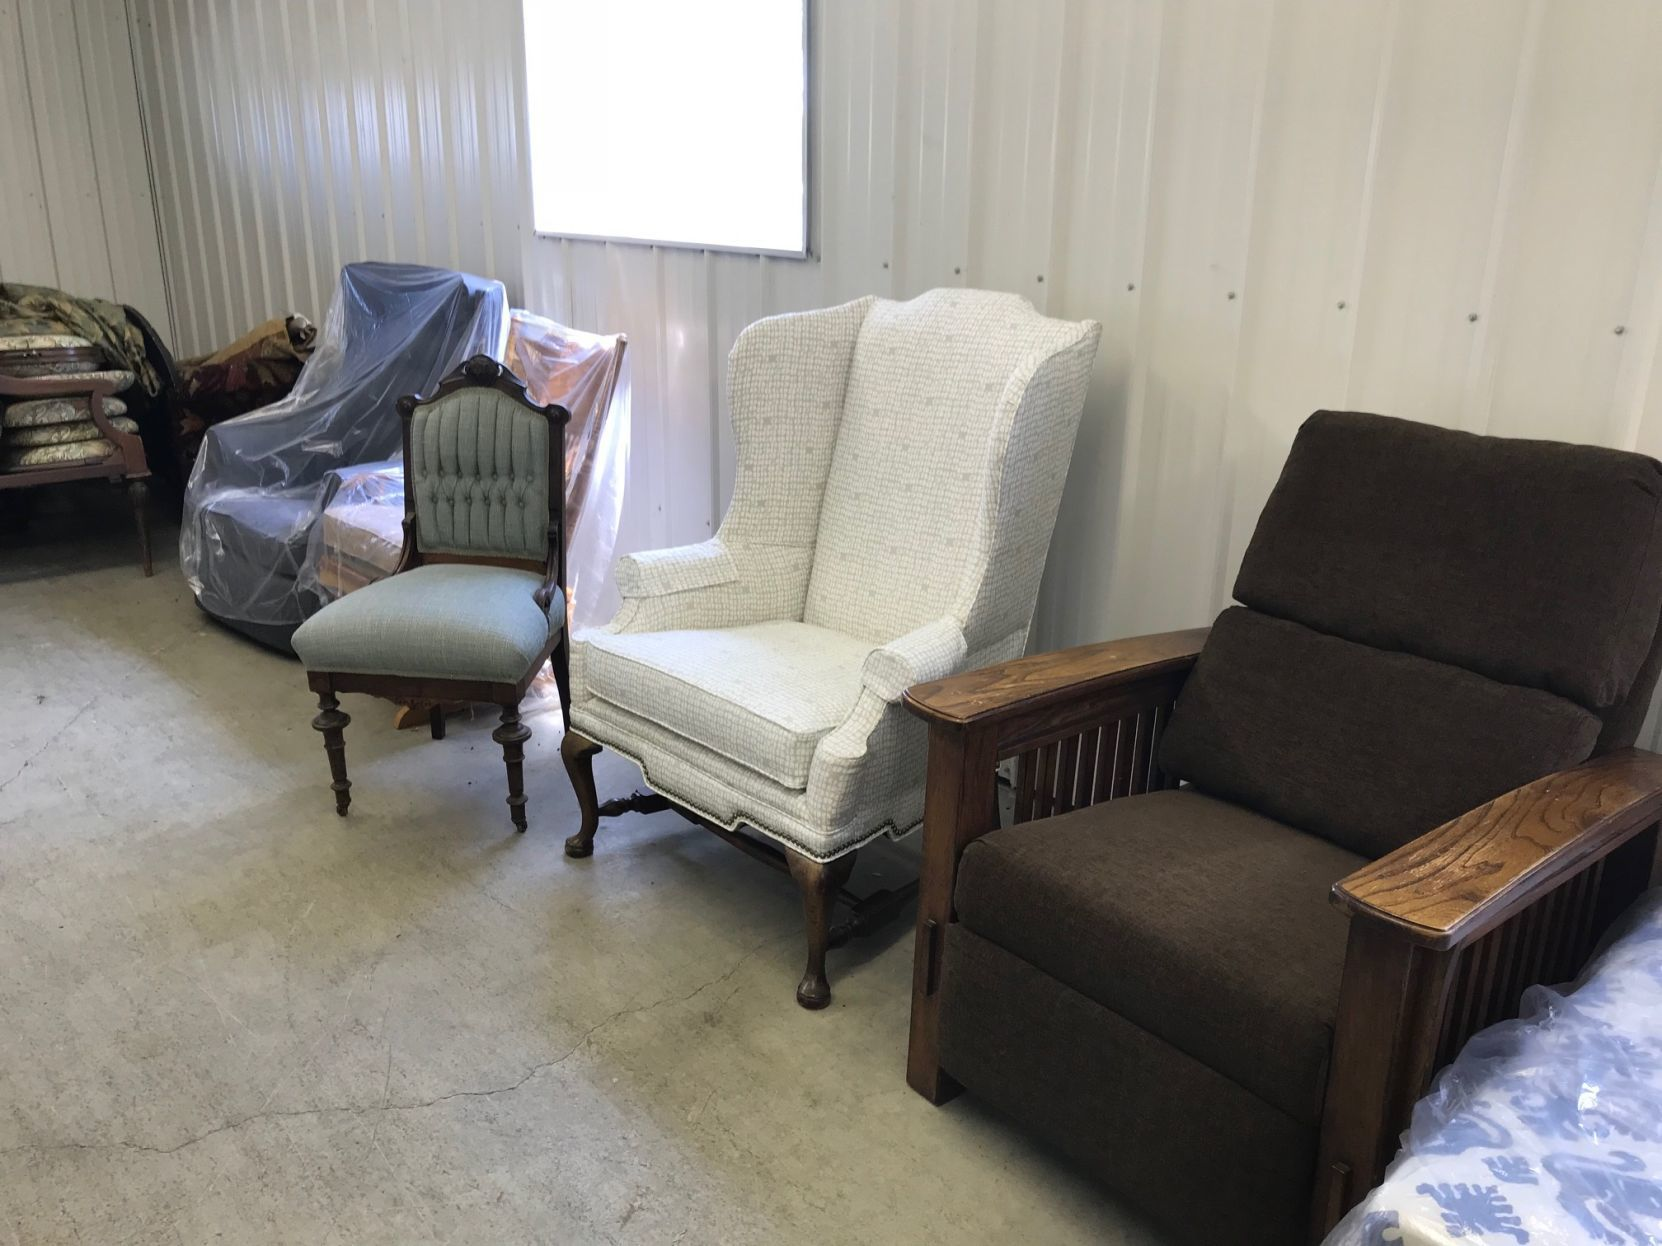 Attirant David Hoover Said Most Of The Work Done At His Shop Is Furniture, Including  Recliners, Chairs And Sofas.